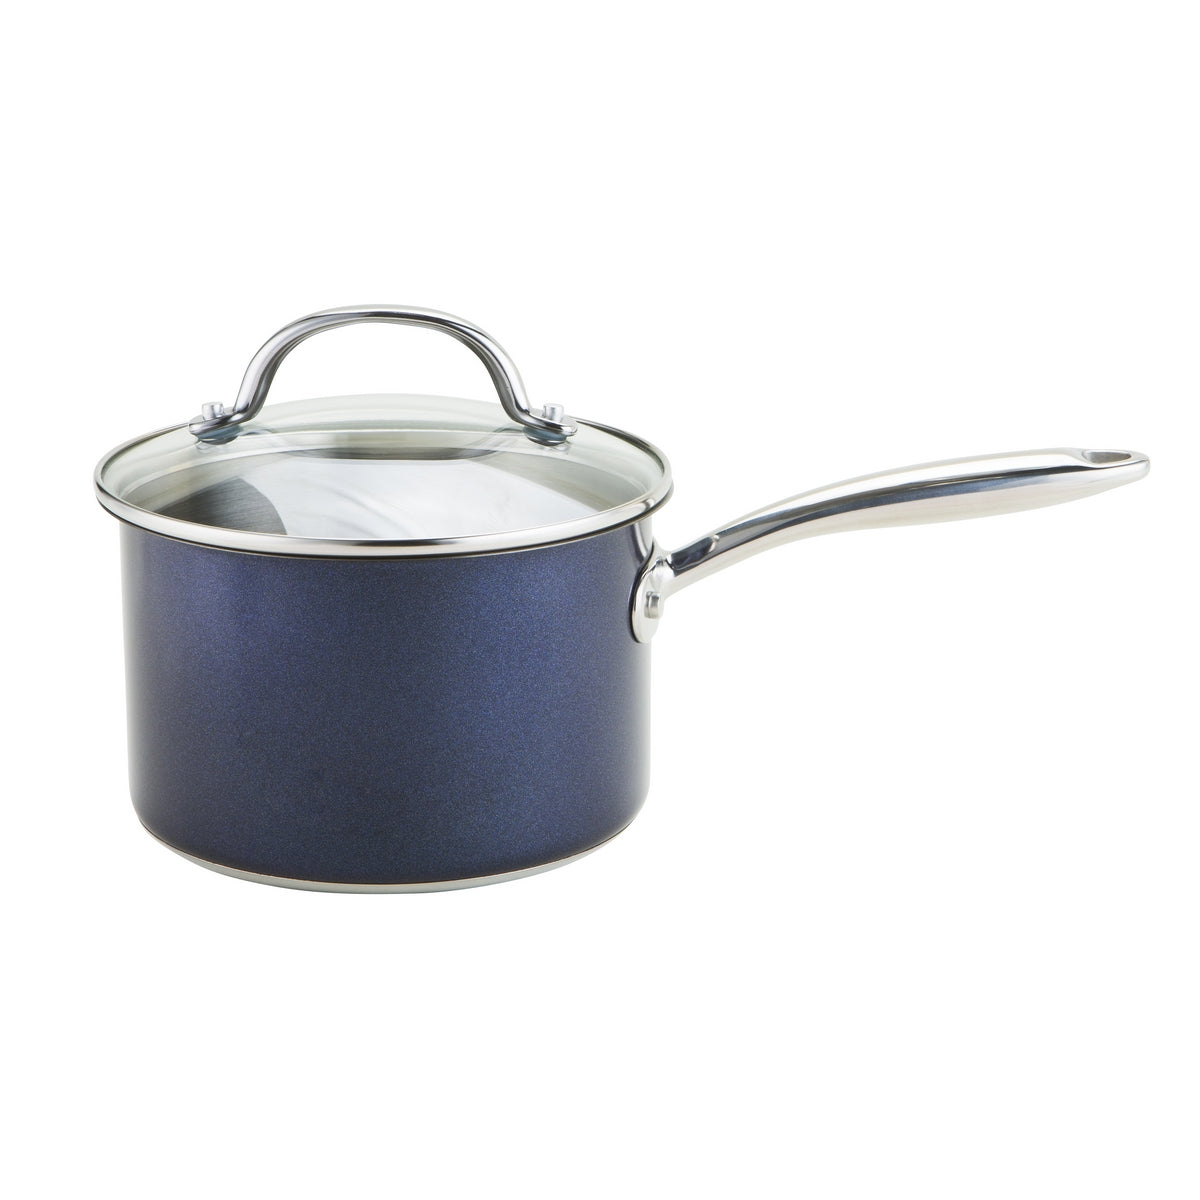 An image of 10 Year Stainless Steel Saucepan 16cm